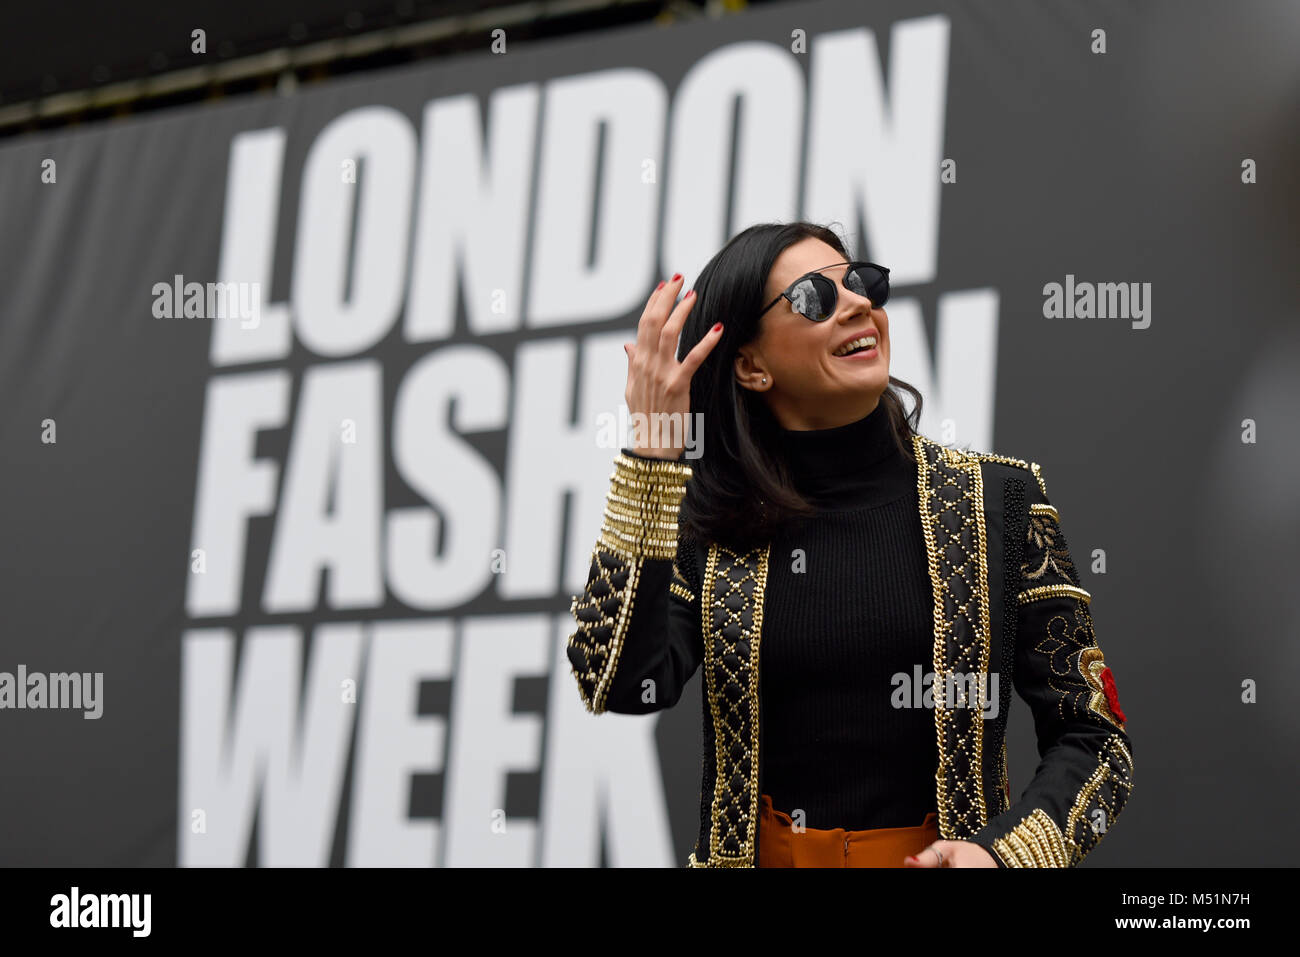 model-posing-by-london-fashion-week-sign-female-girl-woman-space-for-M51N7H.jpg